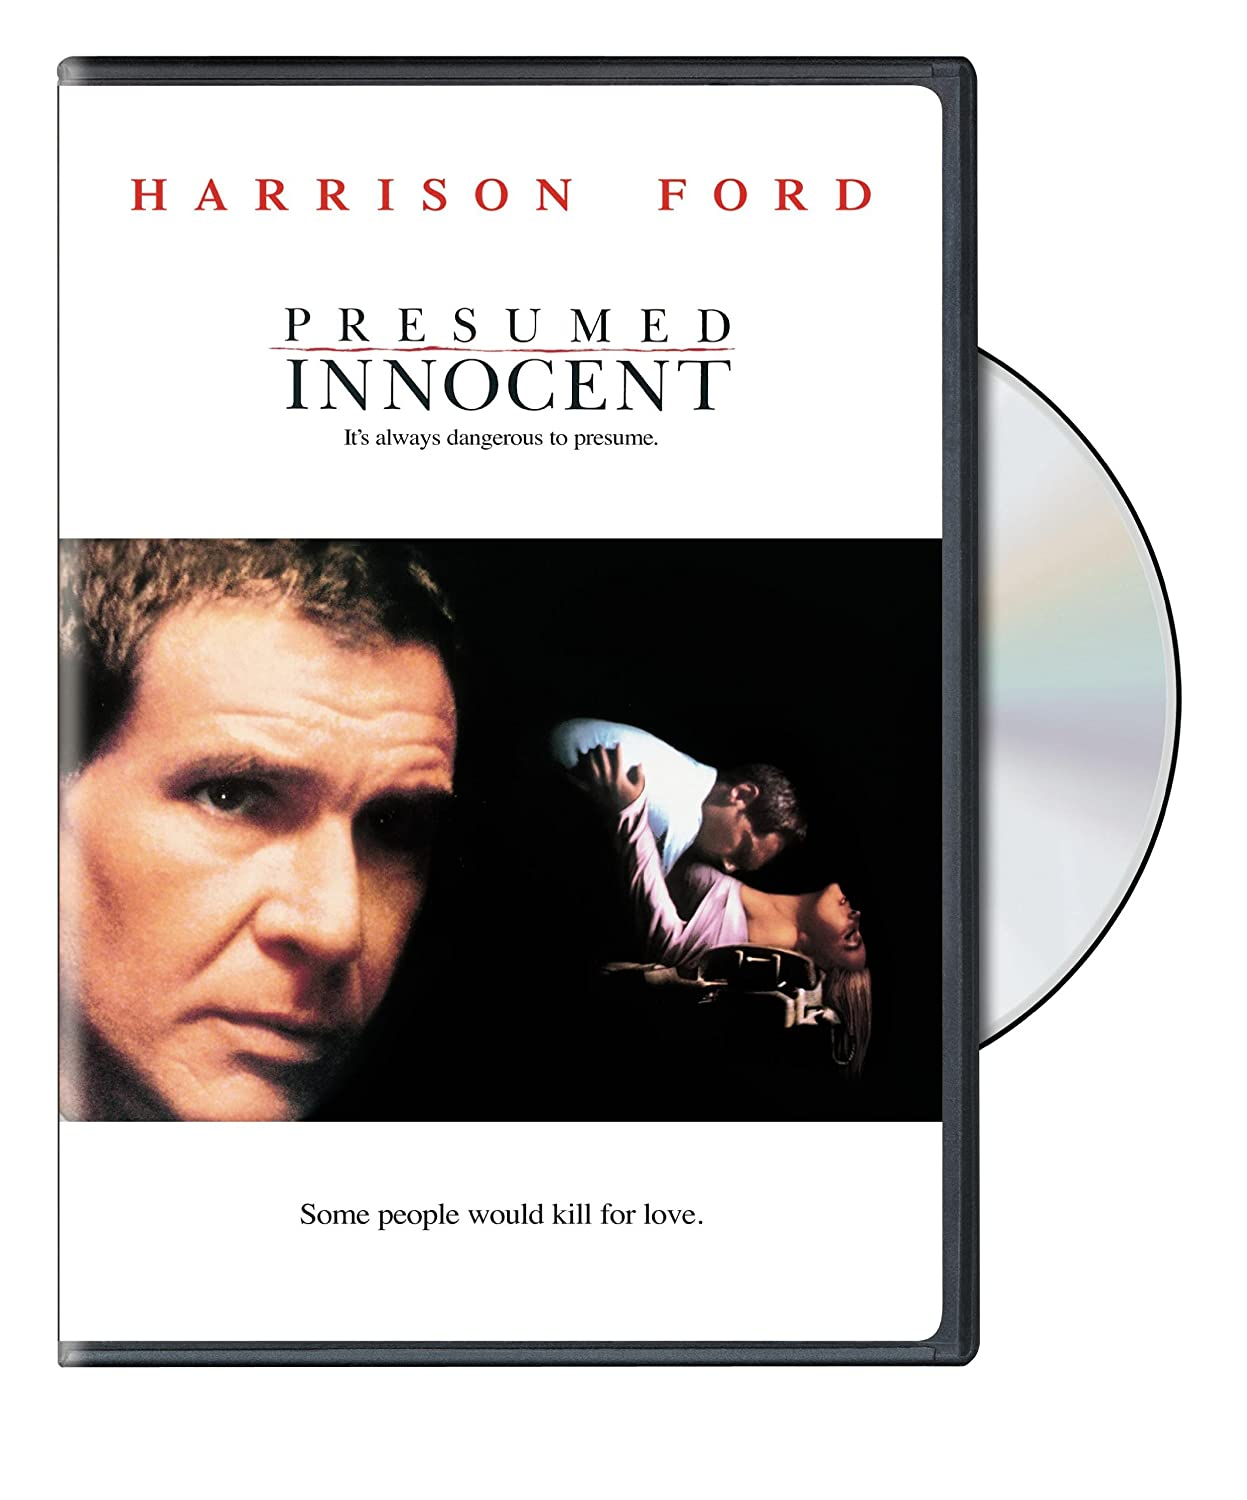 Amazon.com: Presumed Innocent: Susan Solt, Sydney Pollack, Mark Rosenberg, Harrison  Ford, Brian Dennehy, Raul Julia, Bonnie Bedelia, Paul Winfield, ...